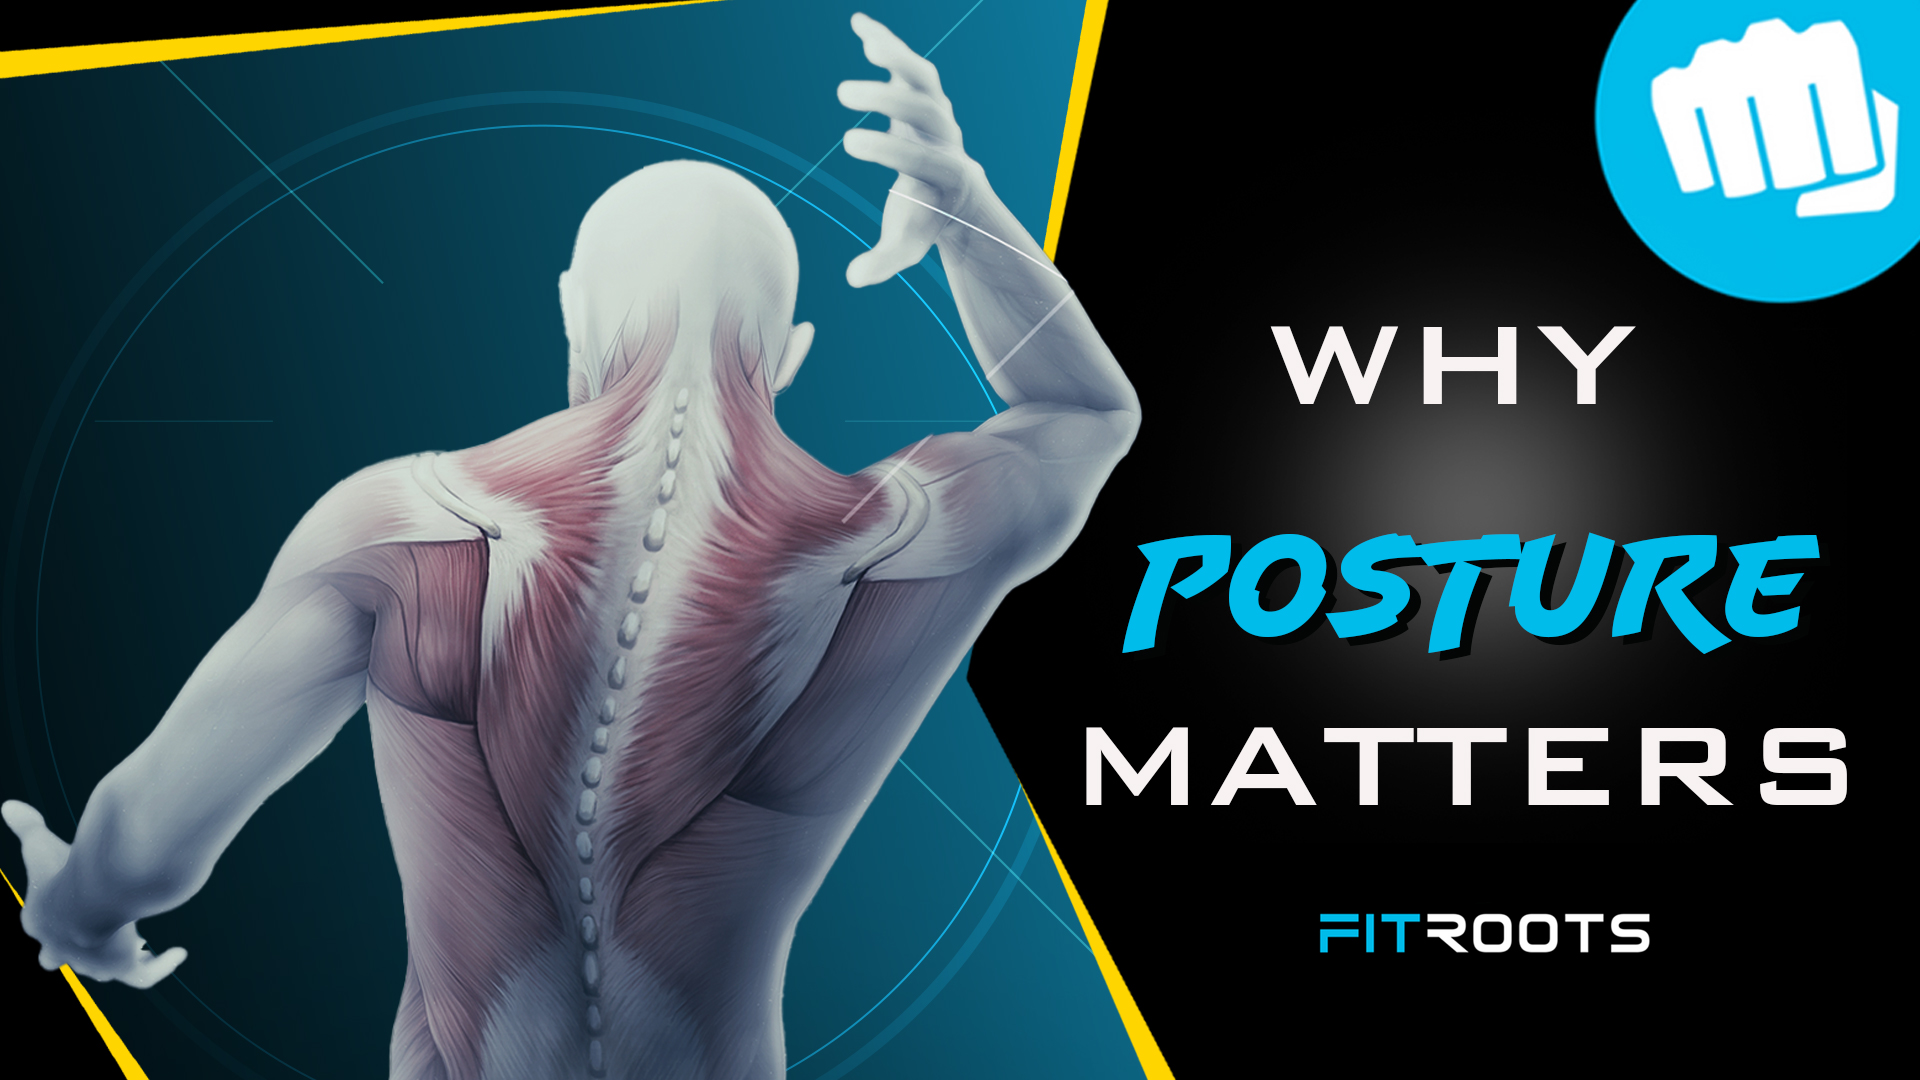 Why Posture Is Important